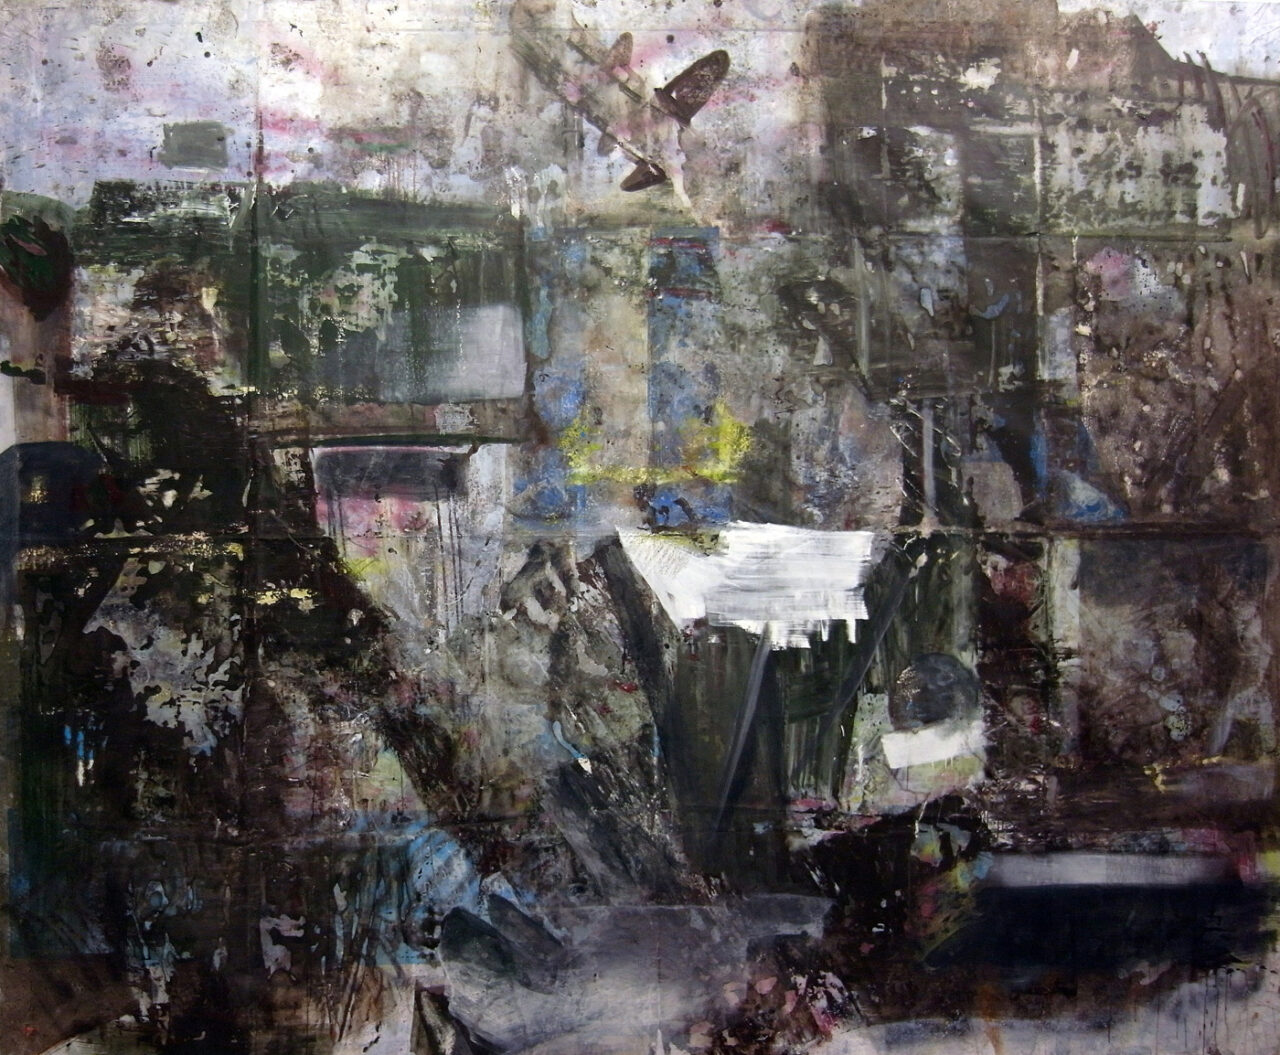 O.T. 2011-21, Oil on Canvas, 3200/5000 cm